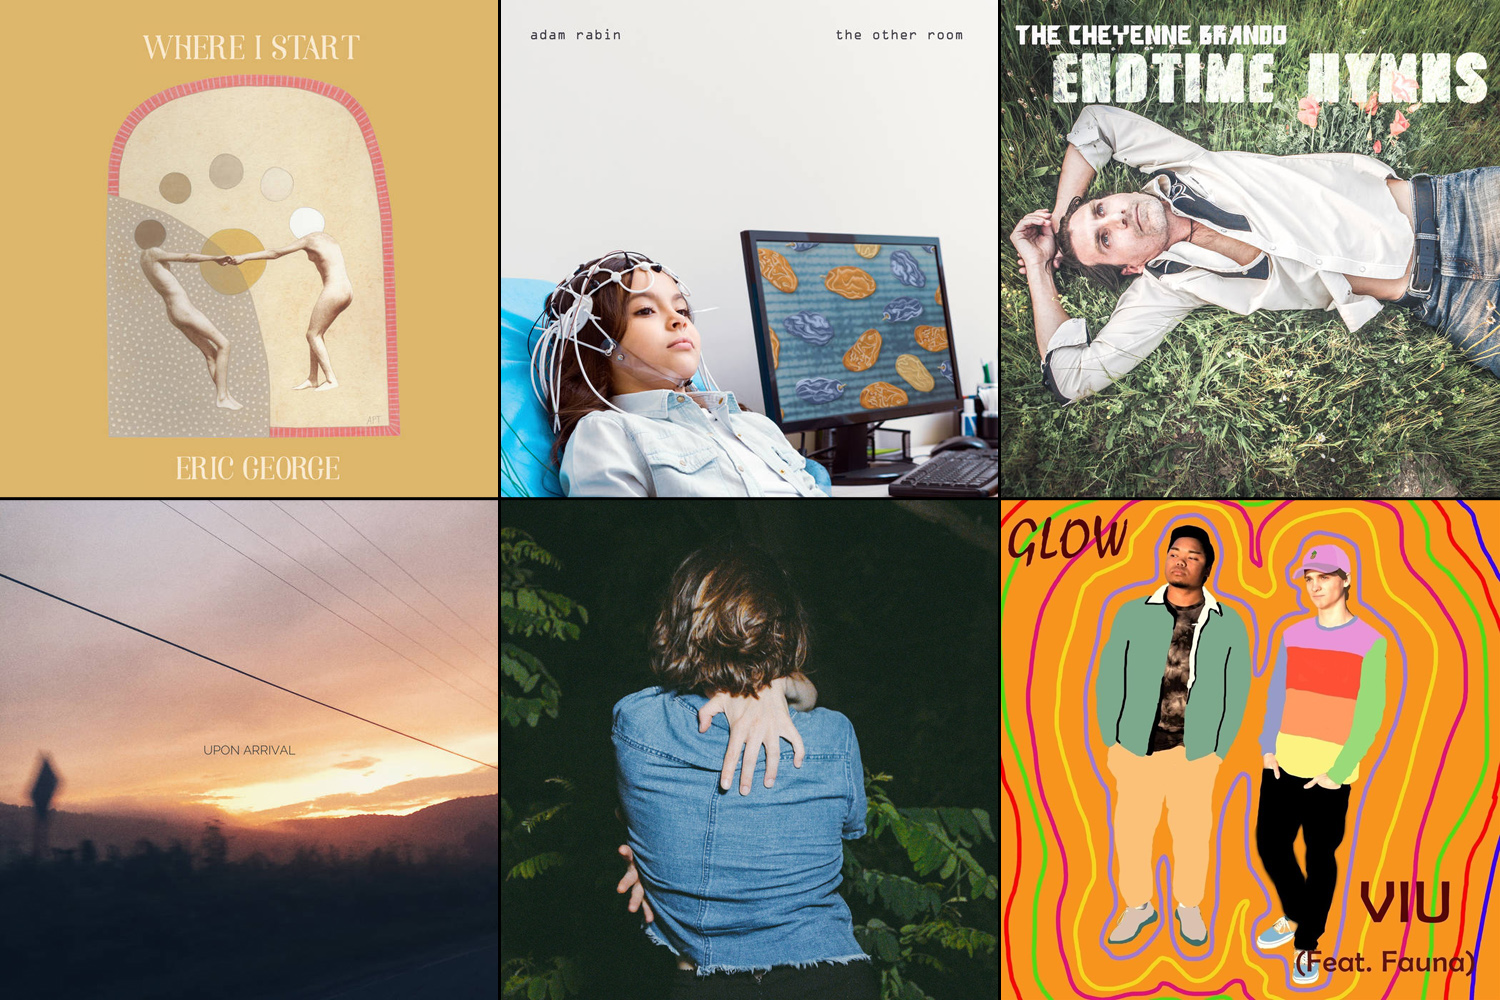 The Best New Songs of July 2019